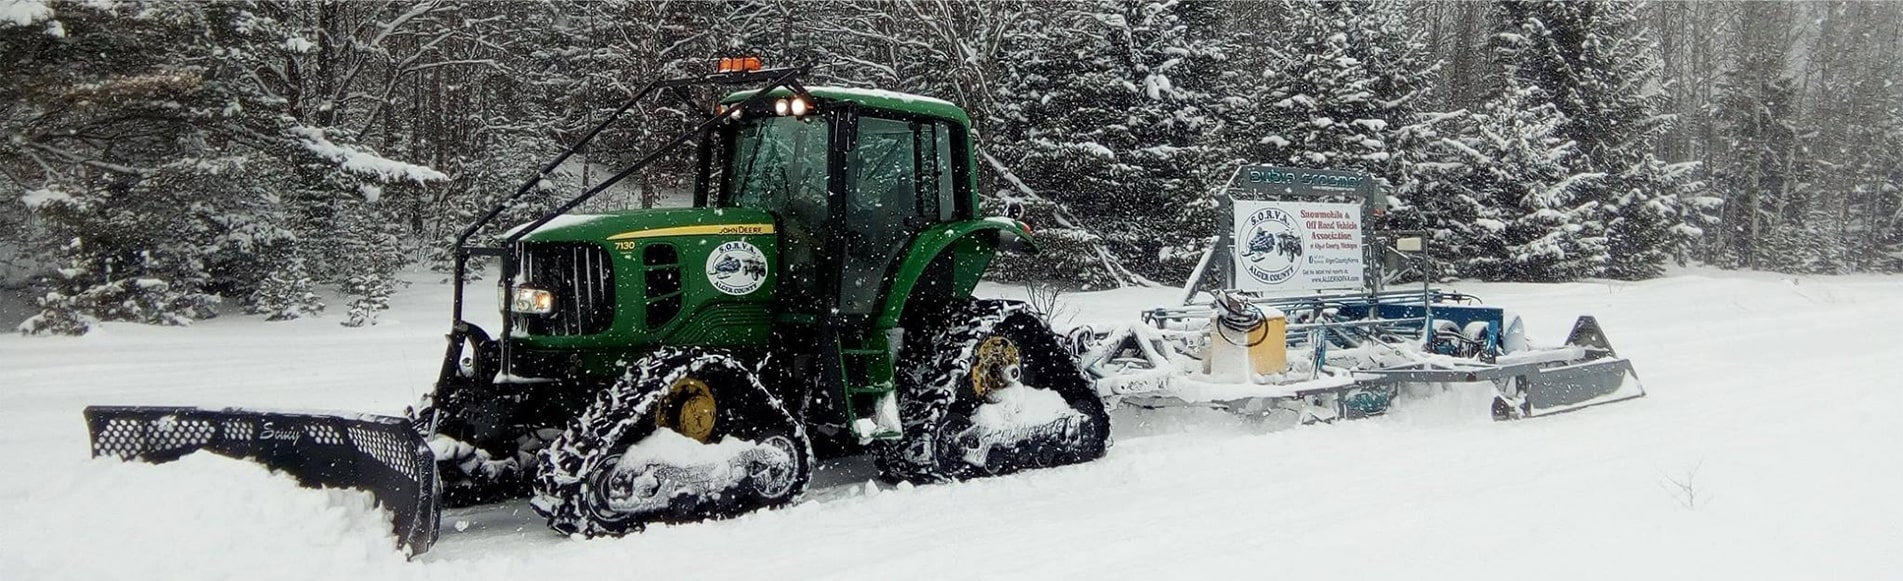 Deere tractor in the snow with groomer